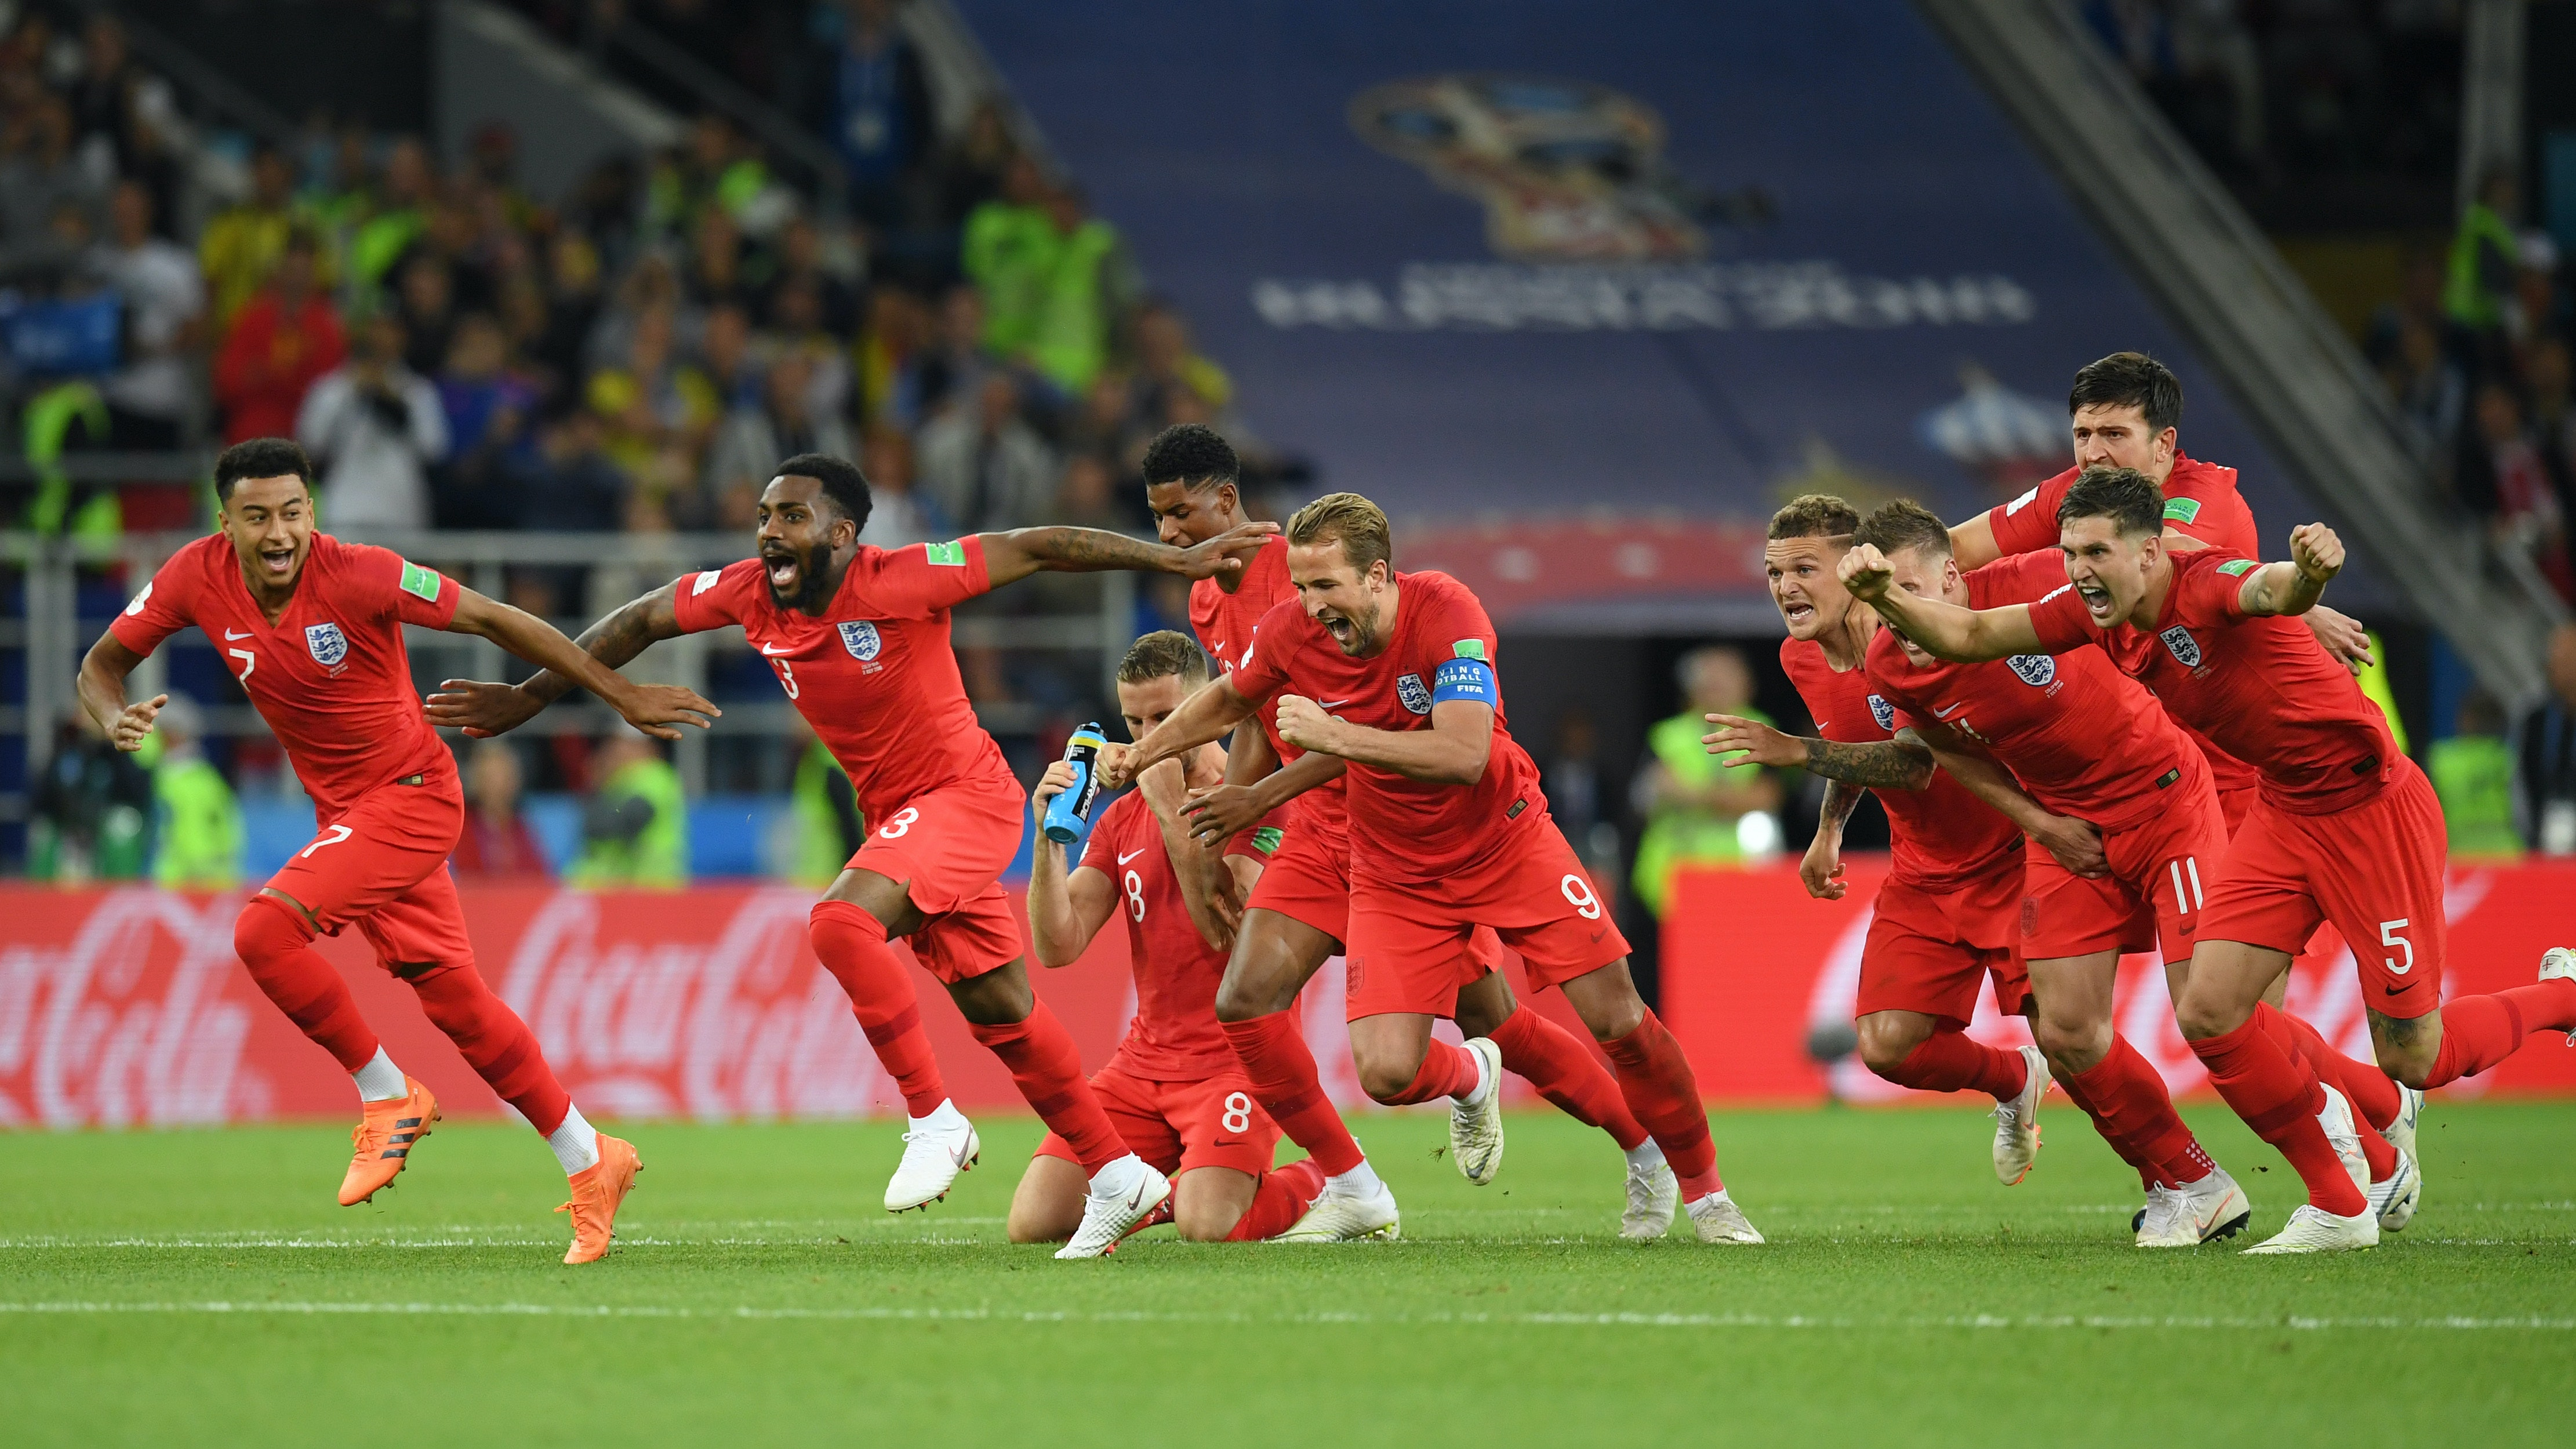 712bb92f 694a 4925 8bf9 609c01eb1986 getty 990978574?w=970&h=582&fit=crop&crop=faces&auto=format&q=70 memes & celebrity reactions to england's world cup victory against